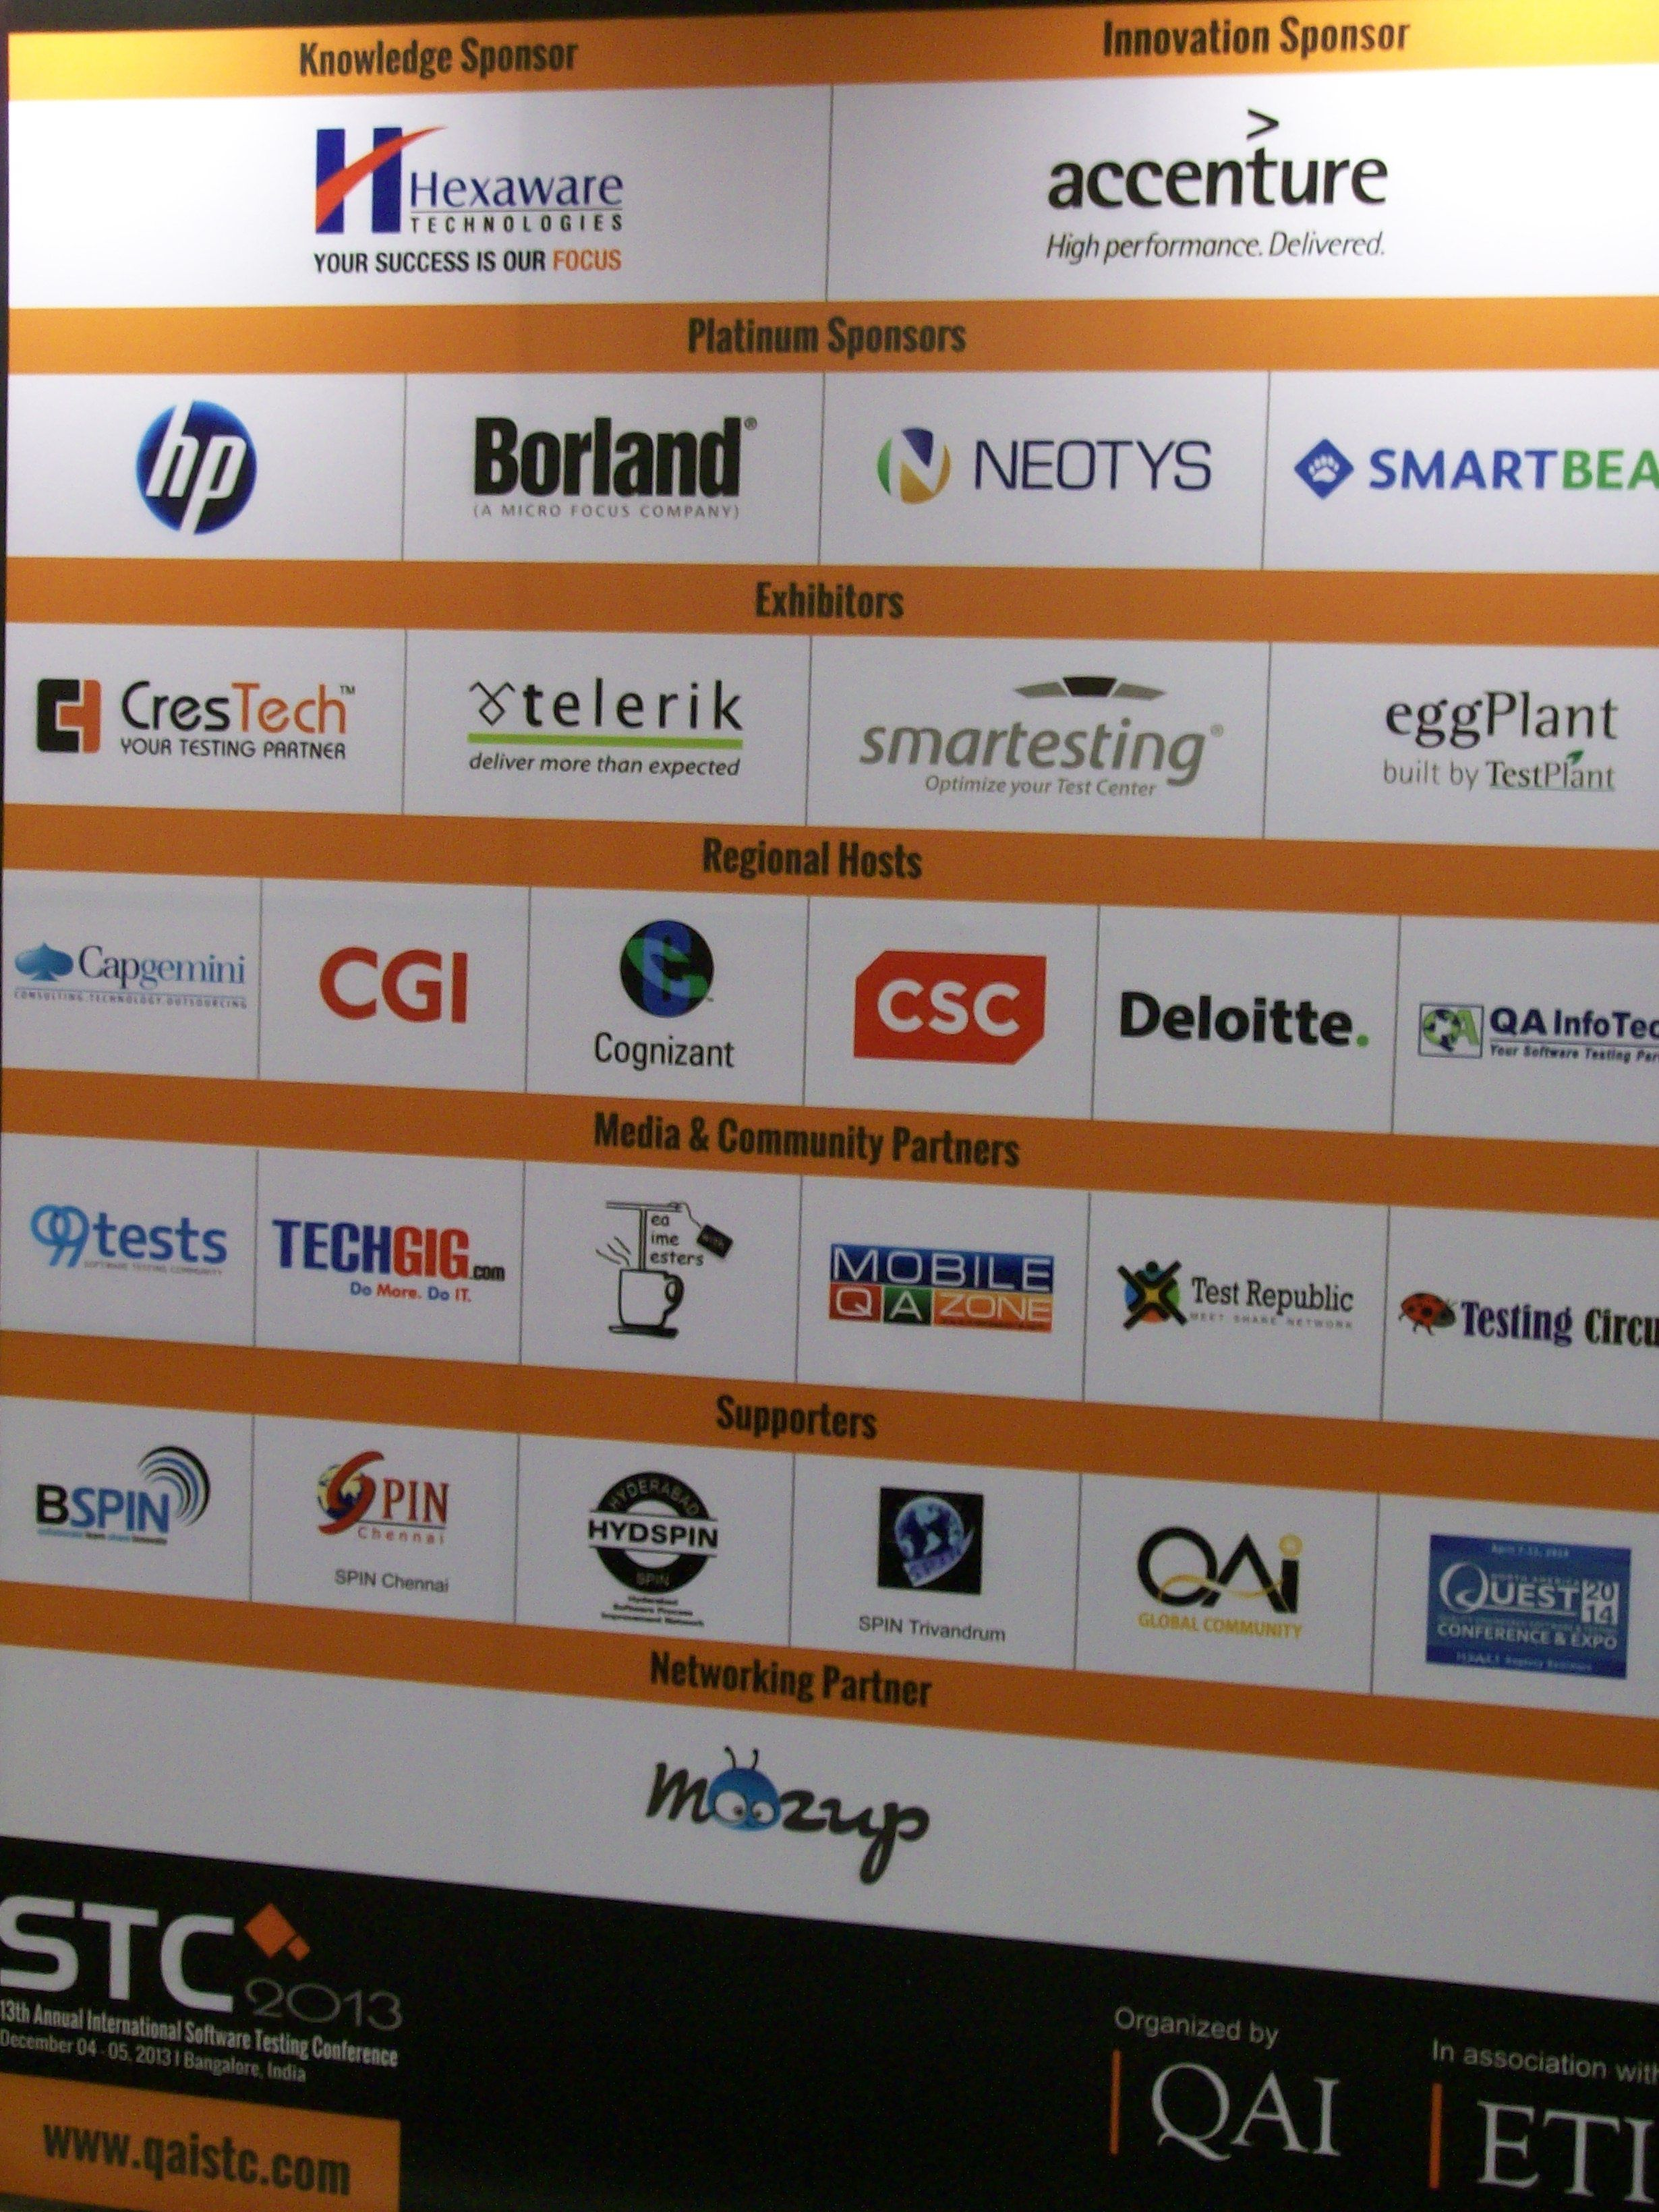 CresTech was one of the sponsors of the event | OpKey at STC